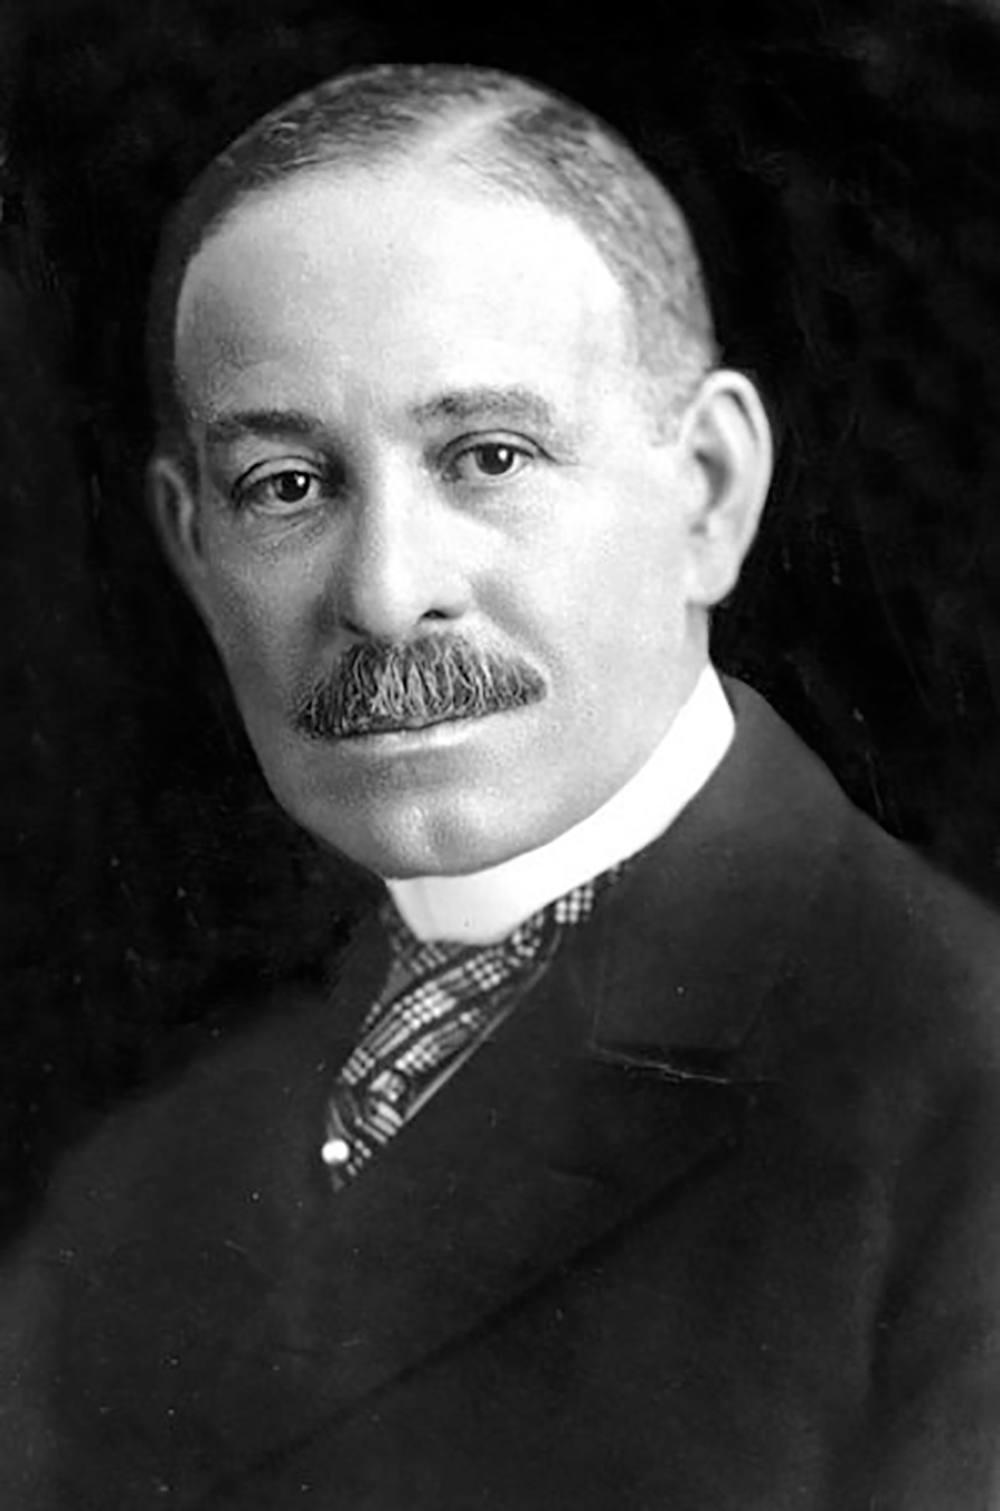 a biography of daniel hale williams an african american general surgeon Daniel hale williams (january 18, 1856 – august 4, 1931) was an african- american general surgeon, who in 1893 performed the  daniel hale williams  was born in 1856 and raised in the city of hollidaysburg, pennsylvania his father .